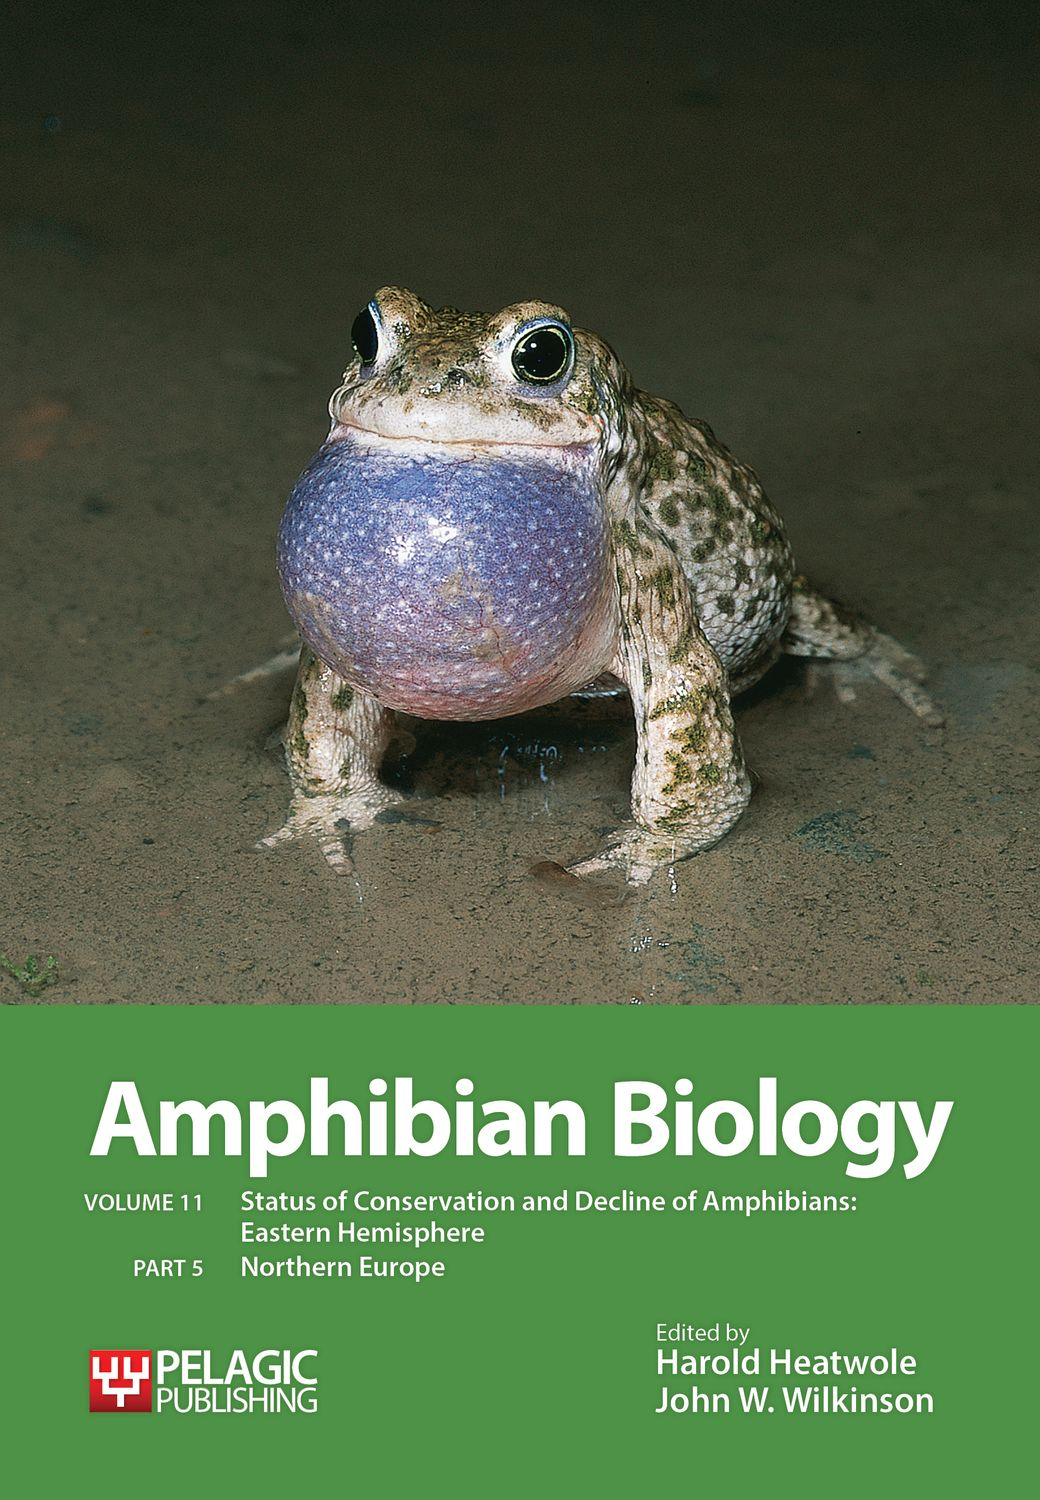 Amphibian Biology, Volume 11, Part 5 - Pelagic Publishing